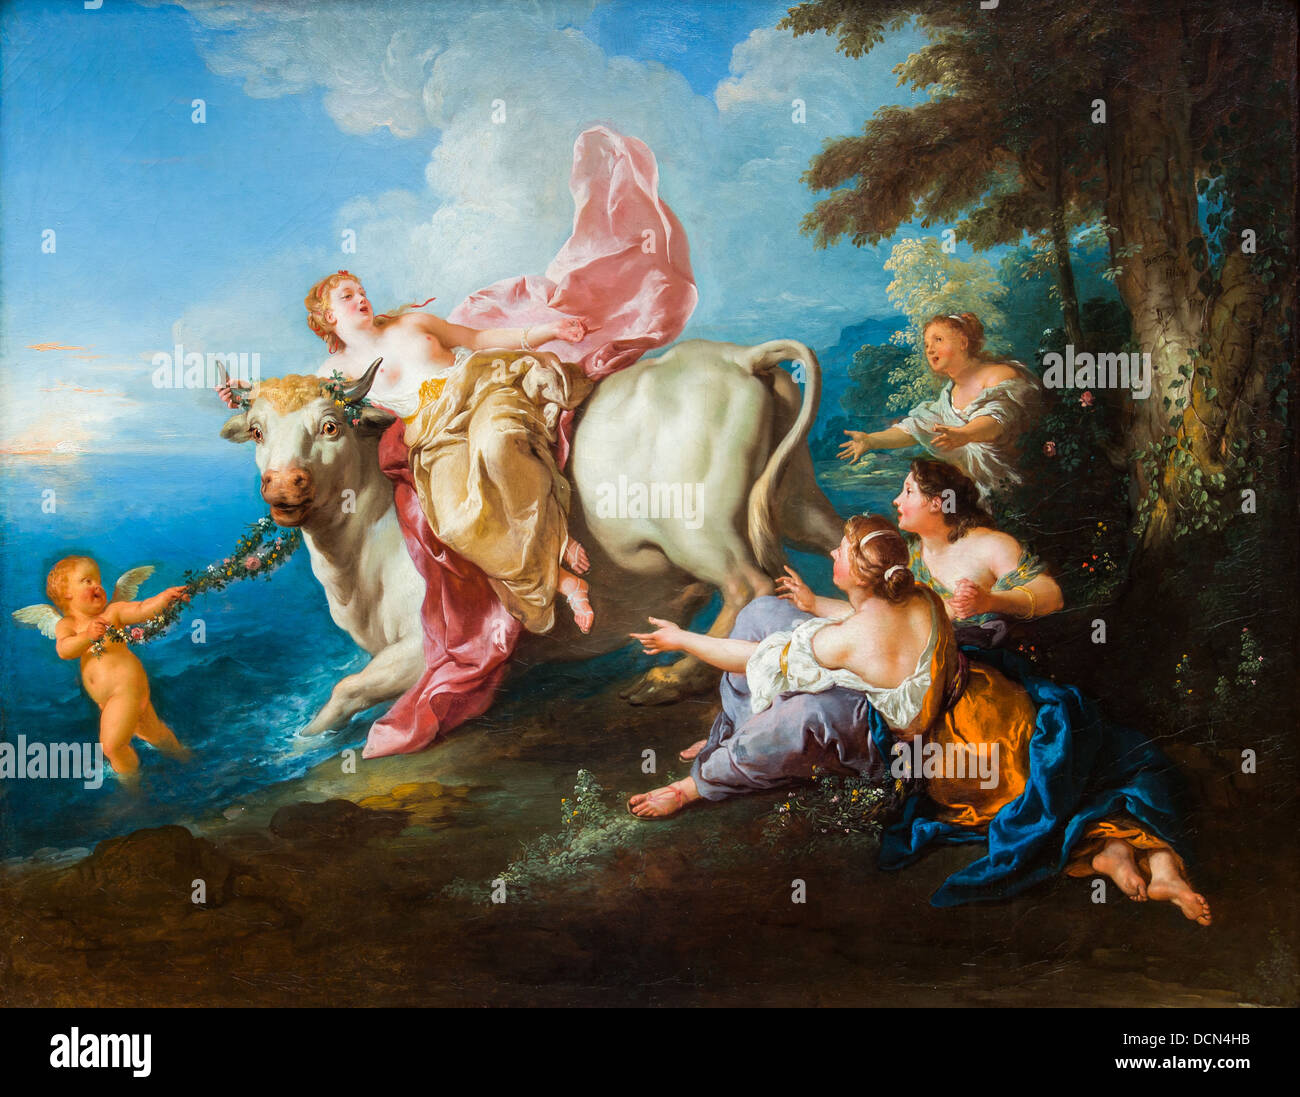 18th century  -  The Abduction of Europa, 1716 - Jean-François de Troy Philippe Sauvan-Magnet / Active Museum - Stock Image